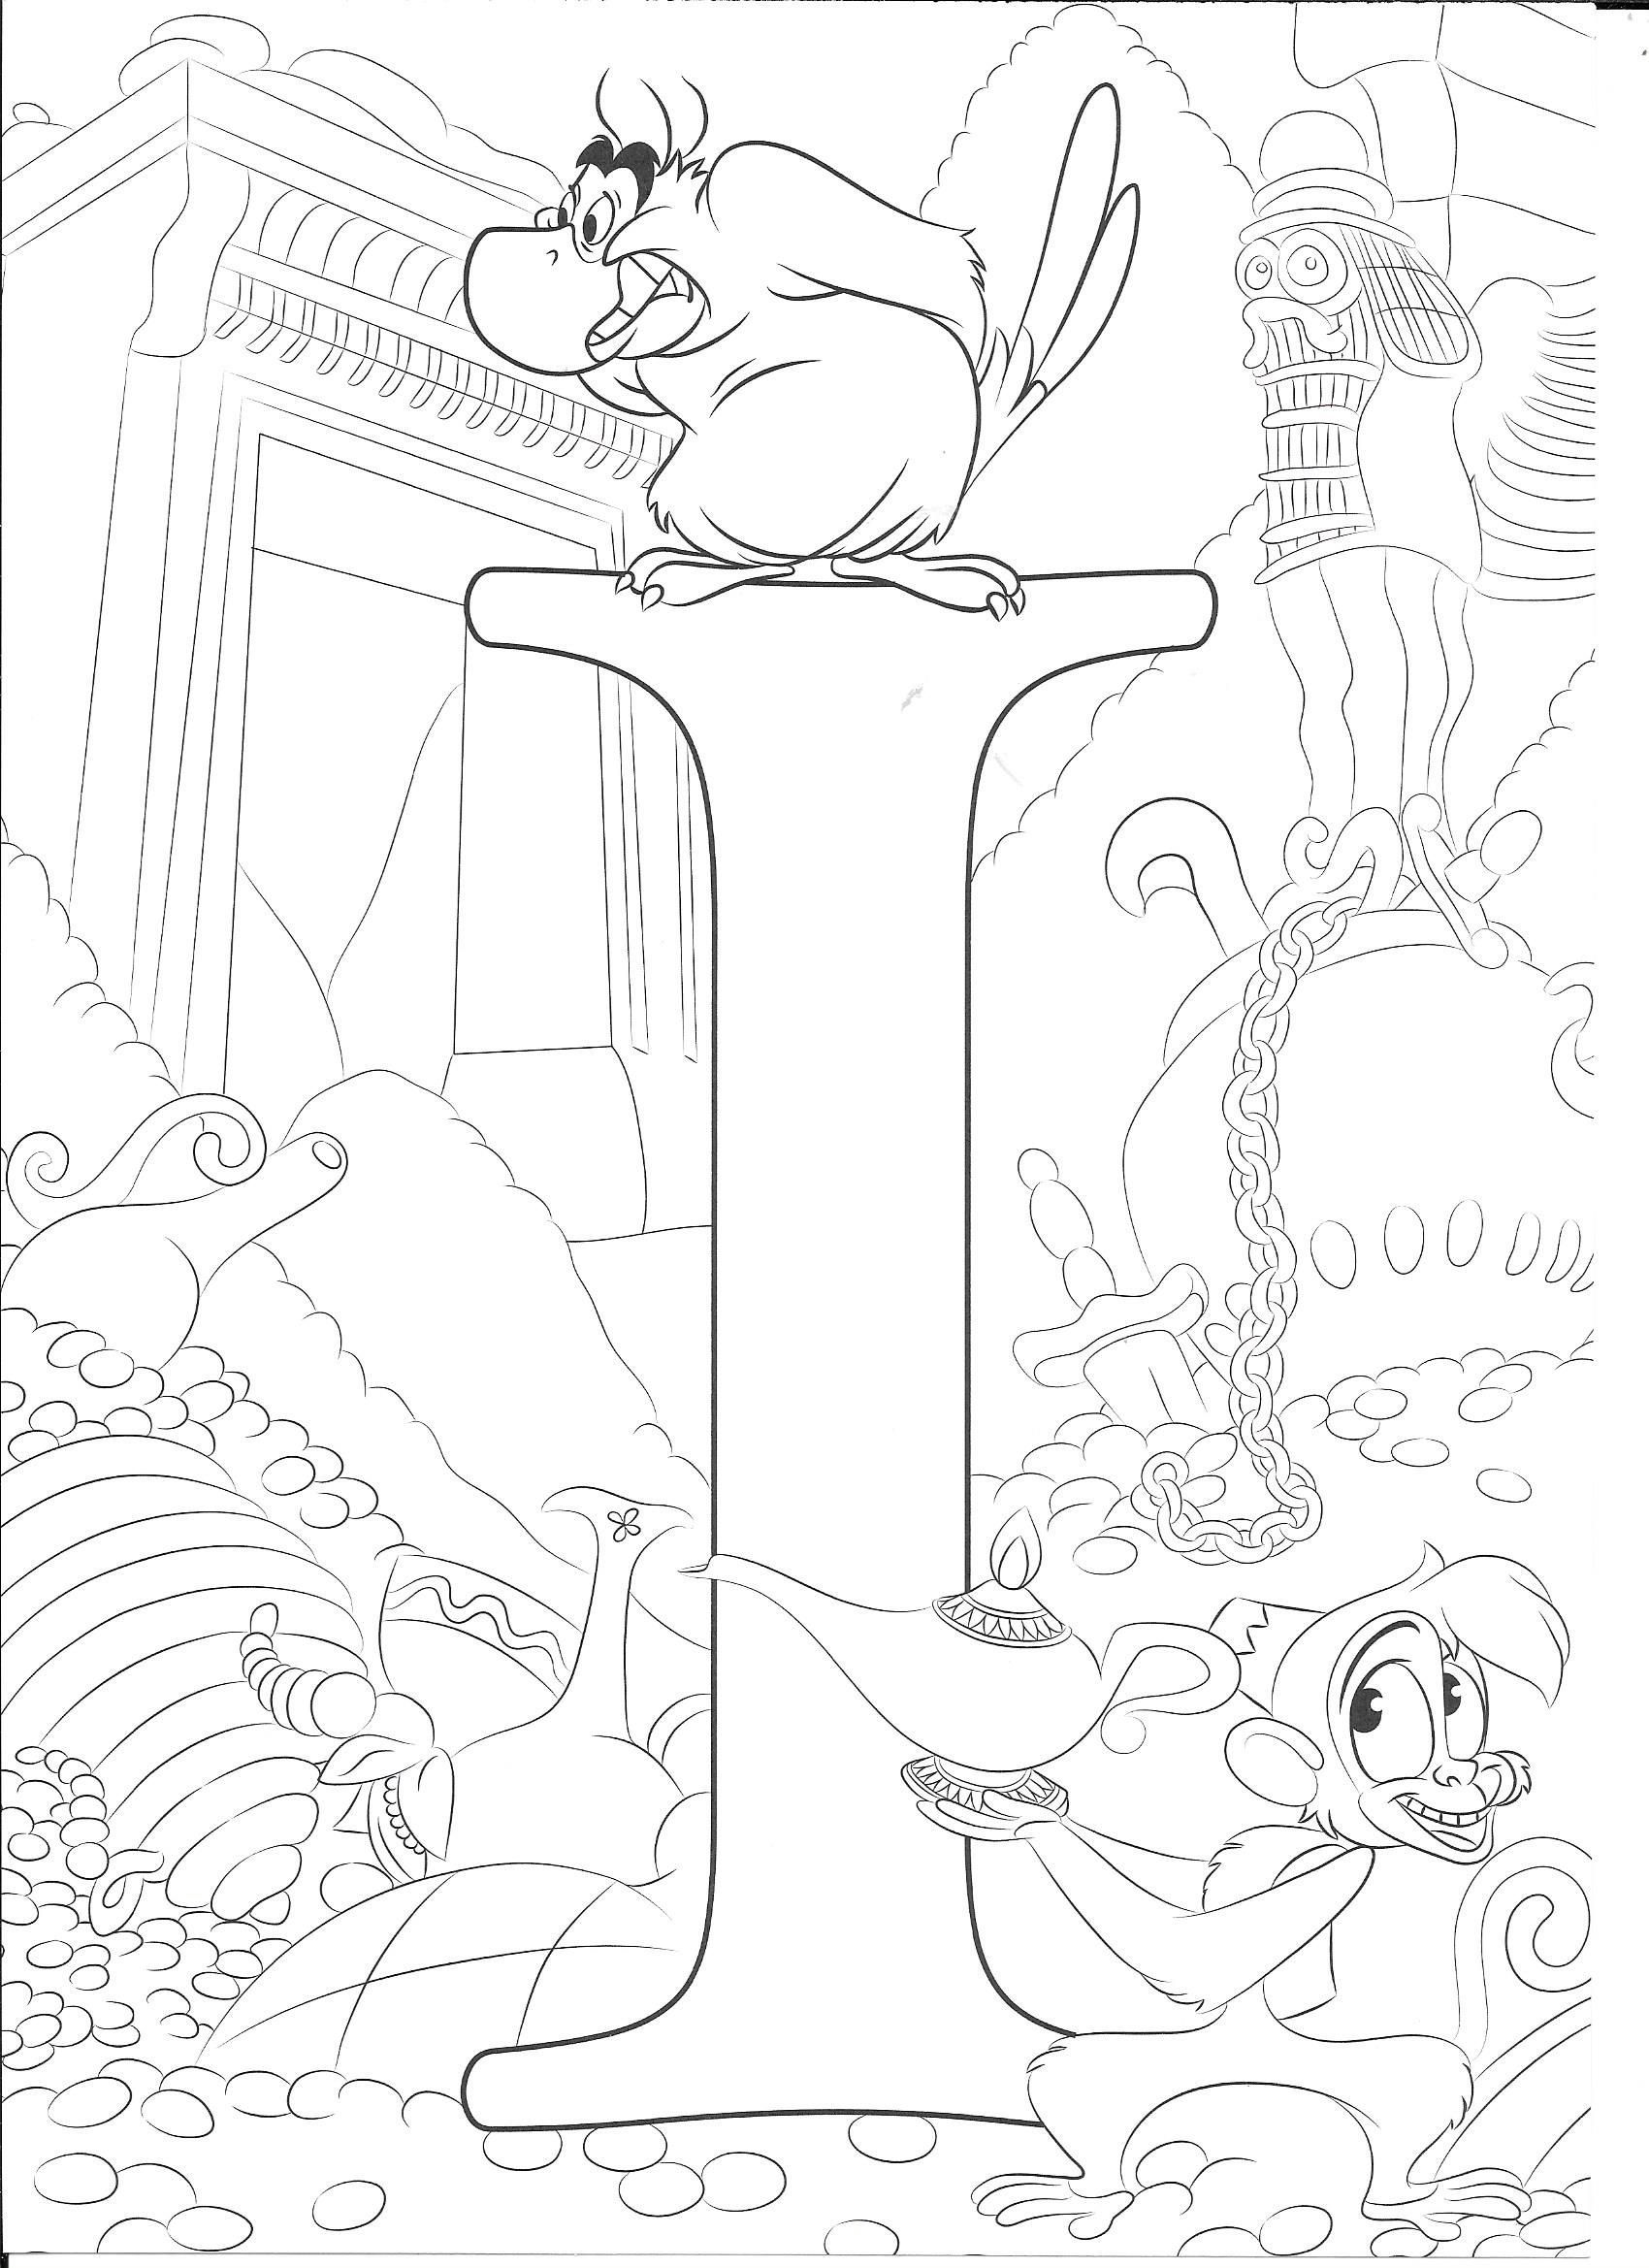 Coloring Page Disney Coloring Sheets Abc Coloring Pages Disney Coloring Pages